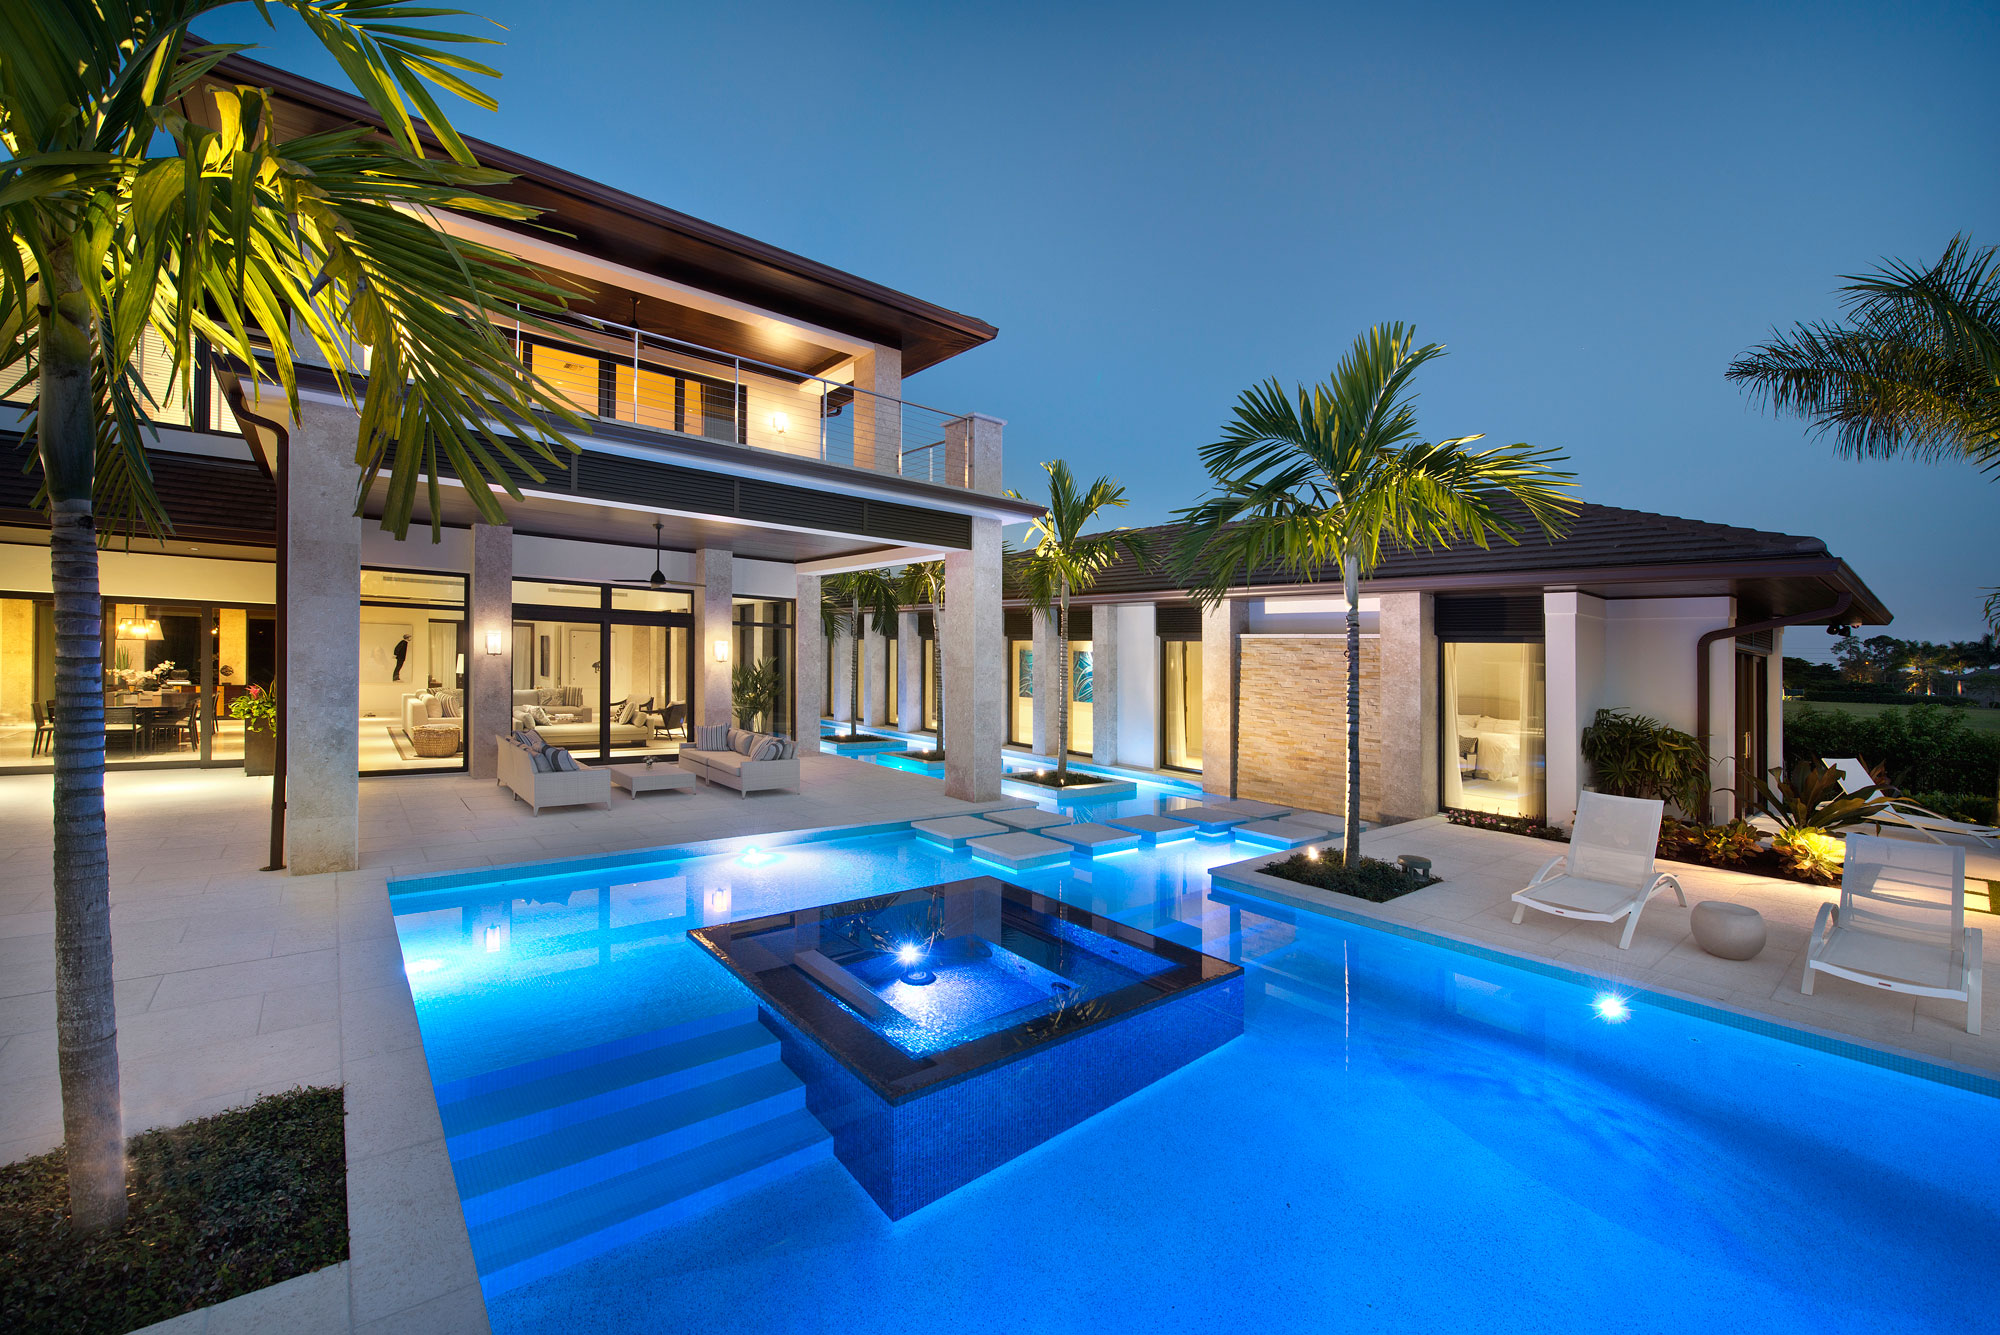 Exquisite private home in florida by harwick homes for Florida pool homes